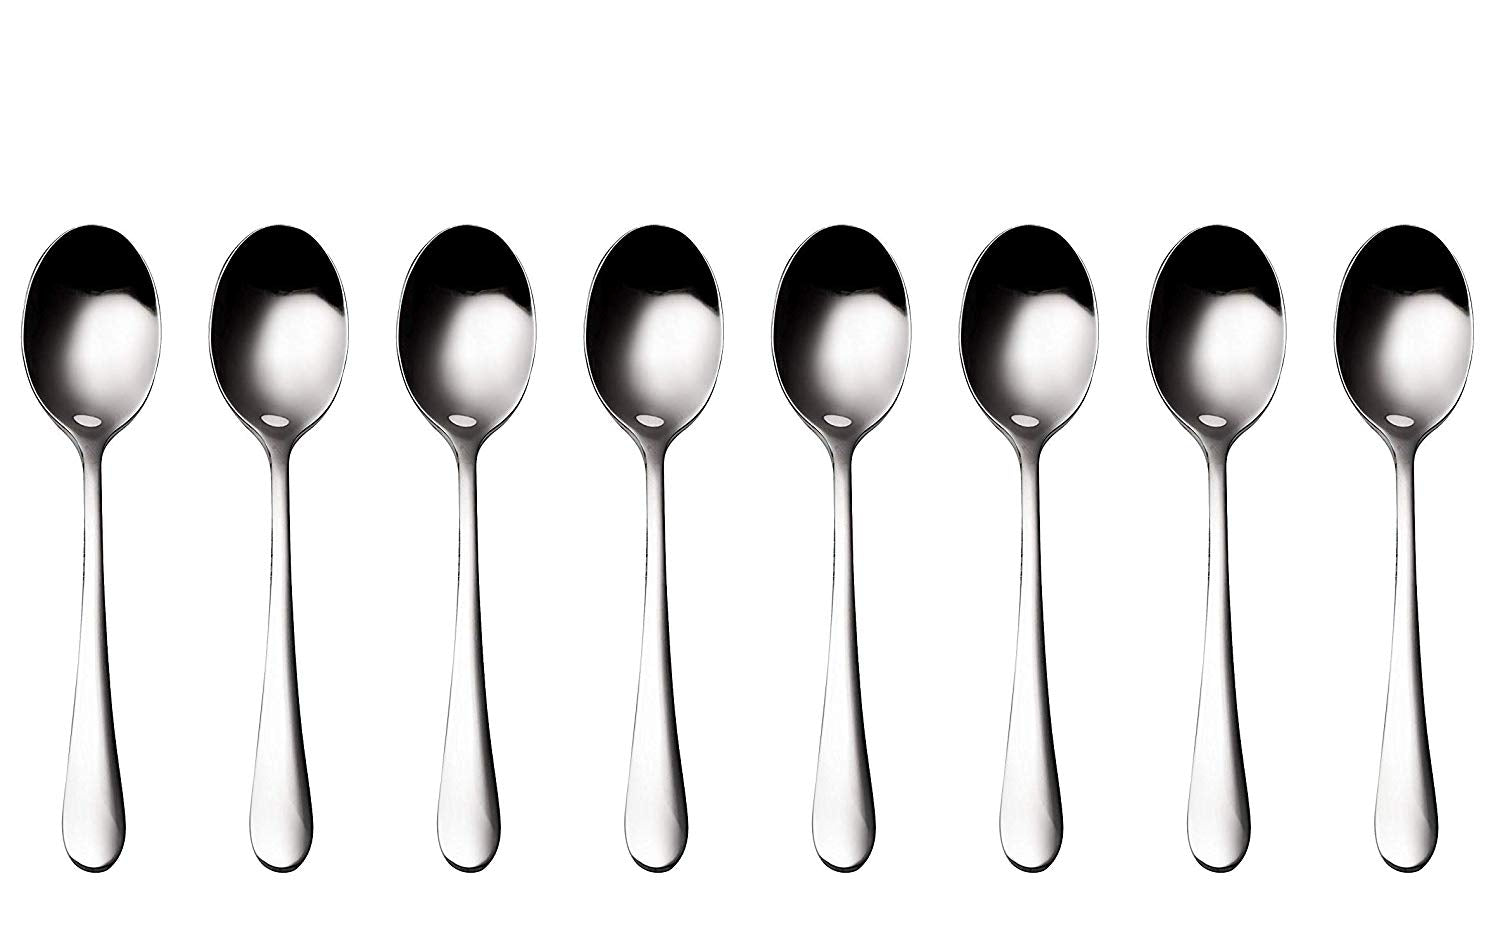 Bruntmor, ALBA Silverware Royal 18/10 Stainless Steel, 8 Dessert Spoons - Bruntmor